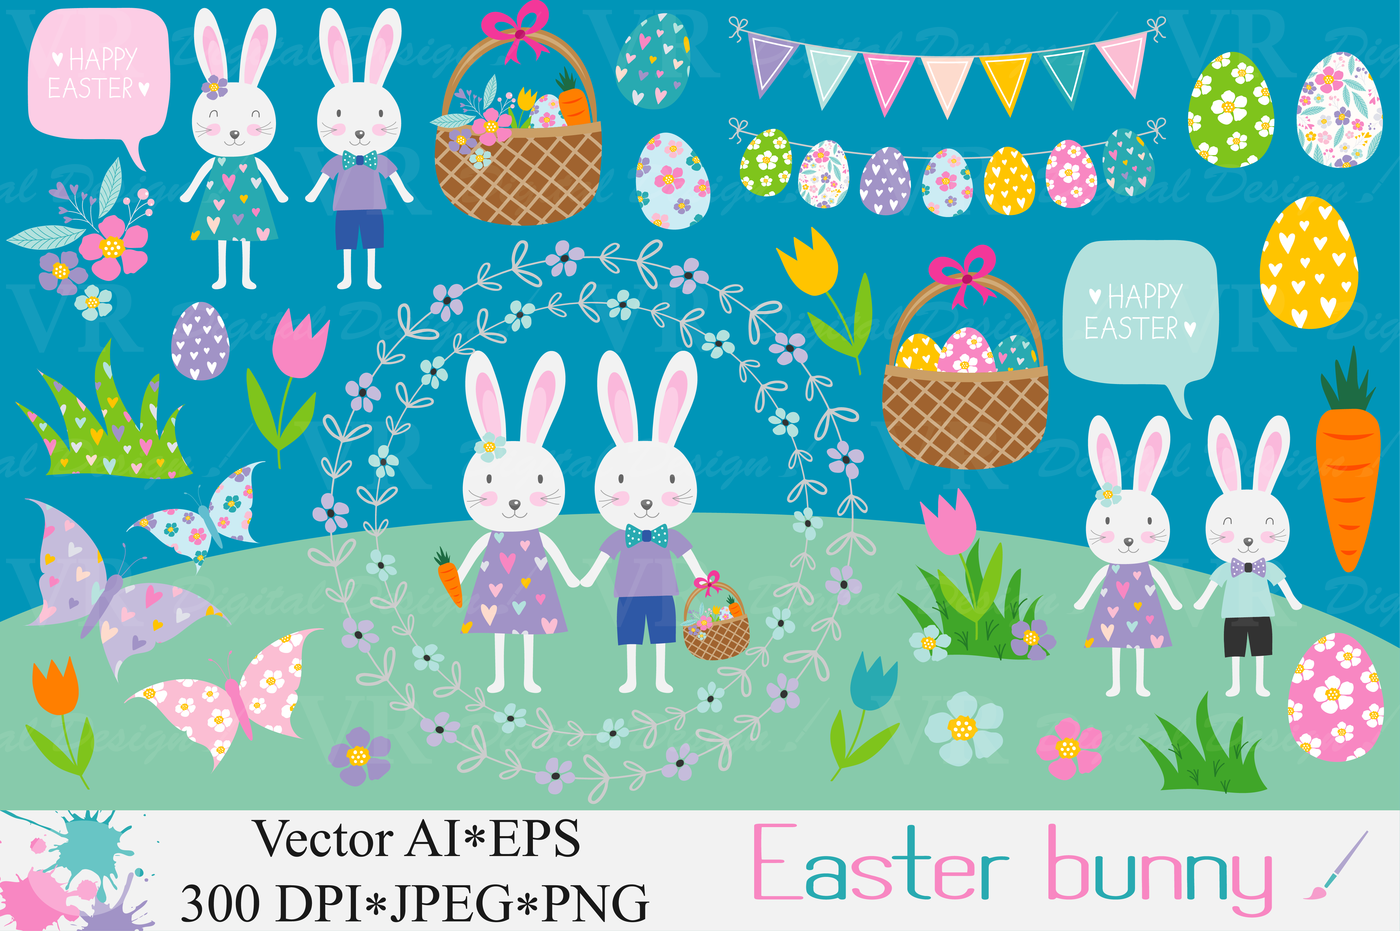 Easter bunny clipart / Easter rabbit, eggs graphics / Spring.